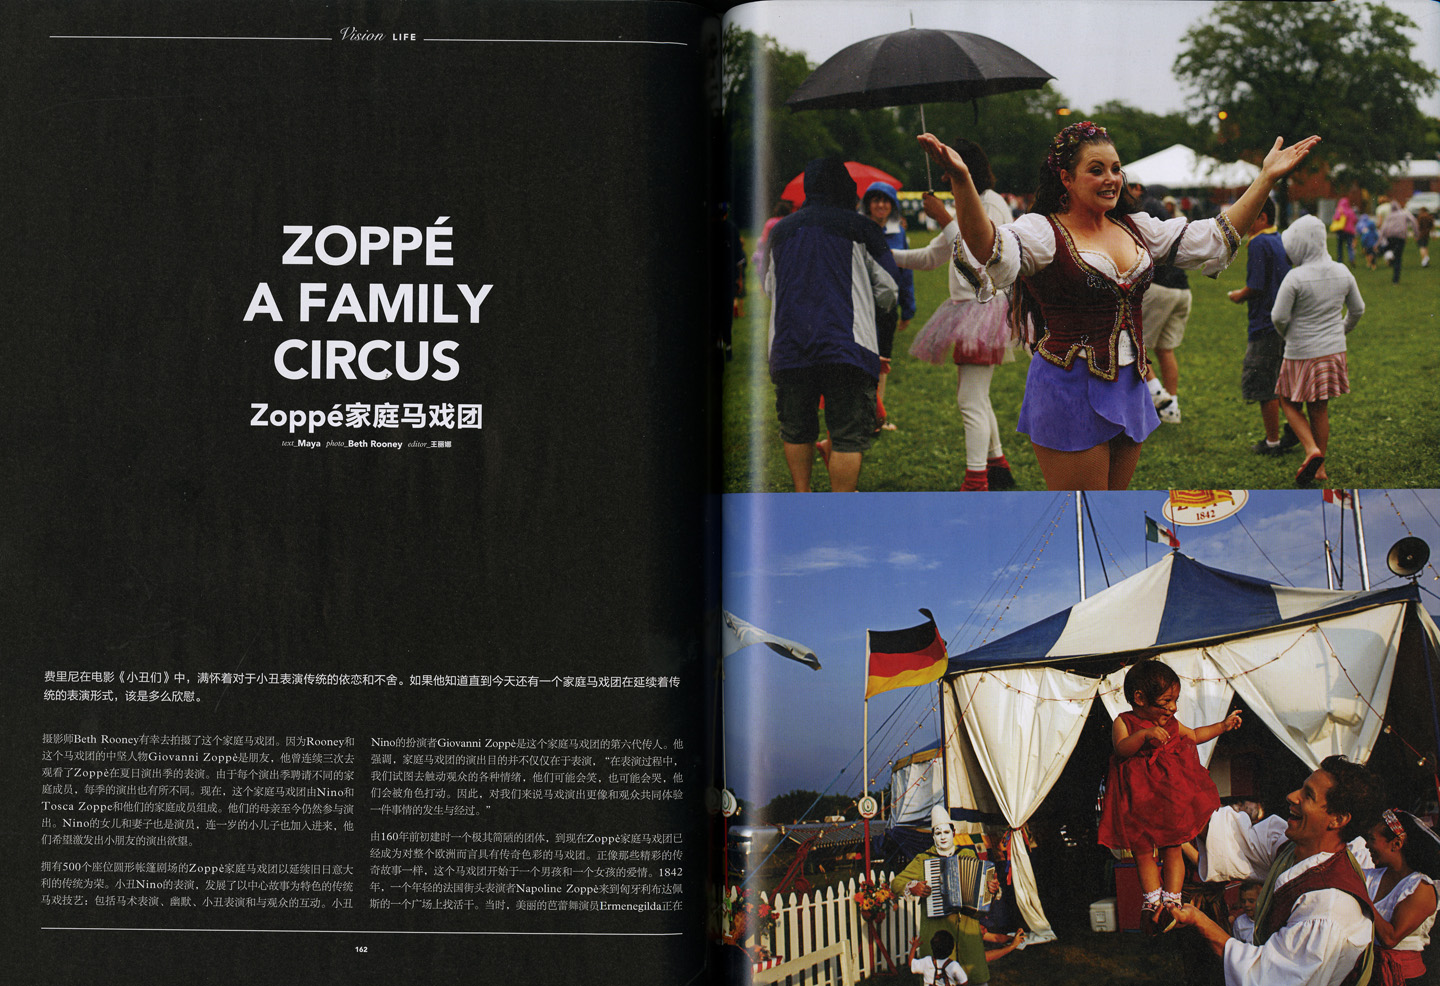 VisionMag-Zoppe-002